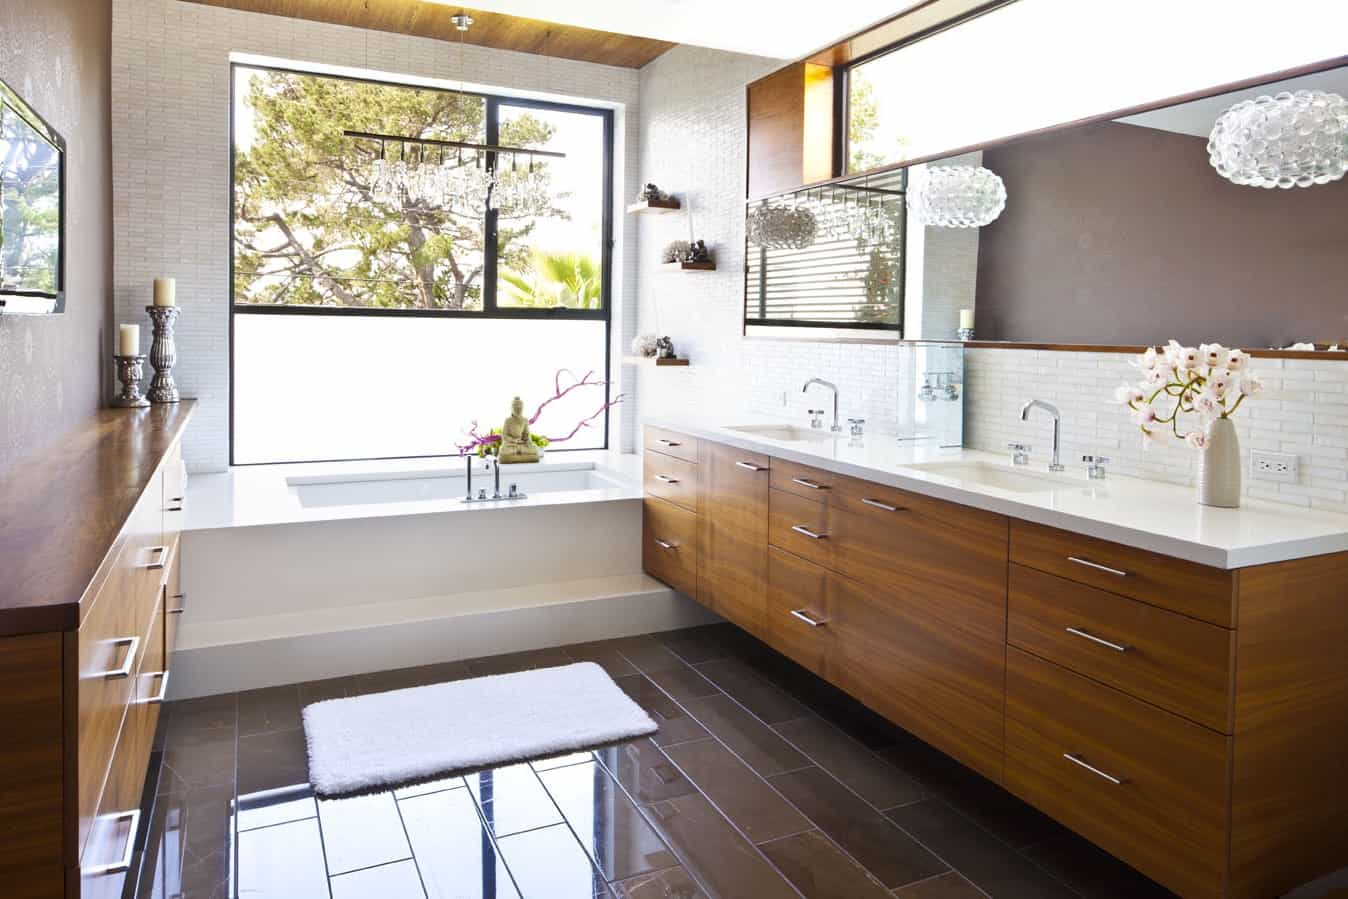 2017 Neutral Bathroom Boasts Midcentury Modern Vanity (View 12 of 29)